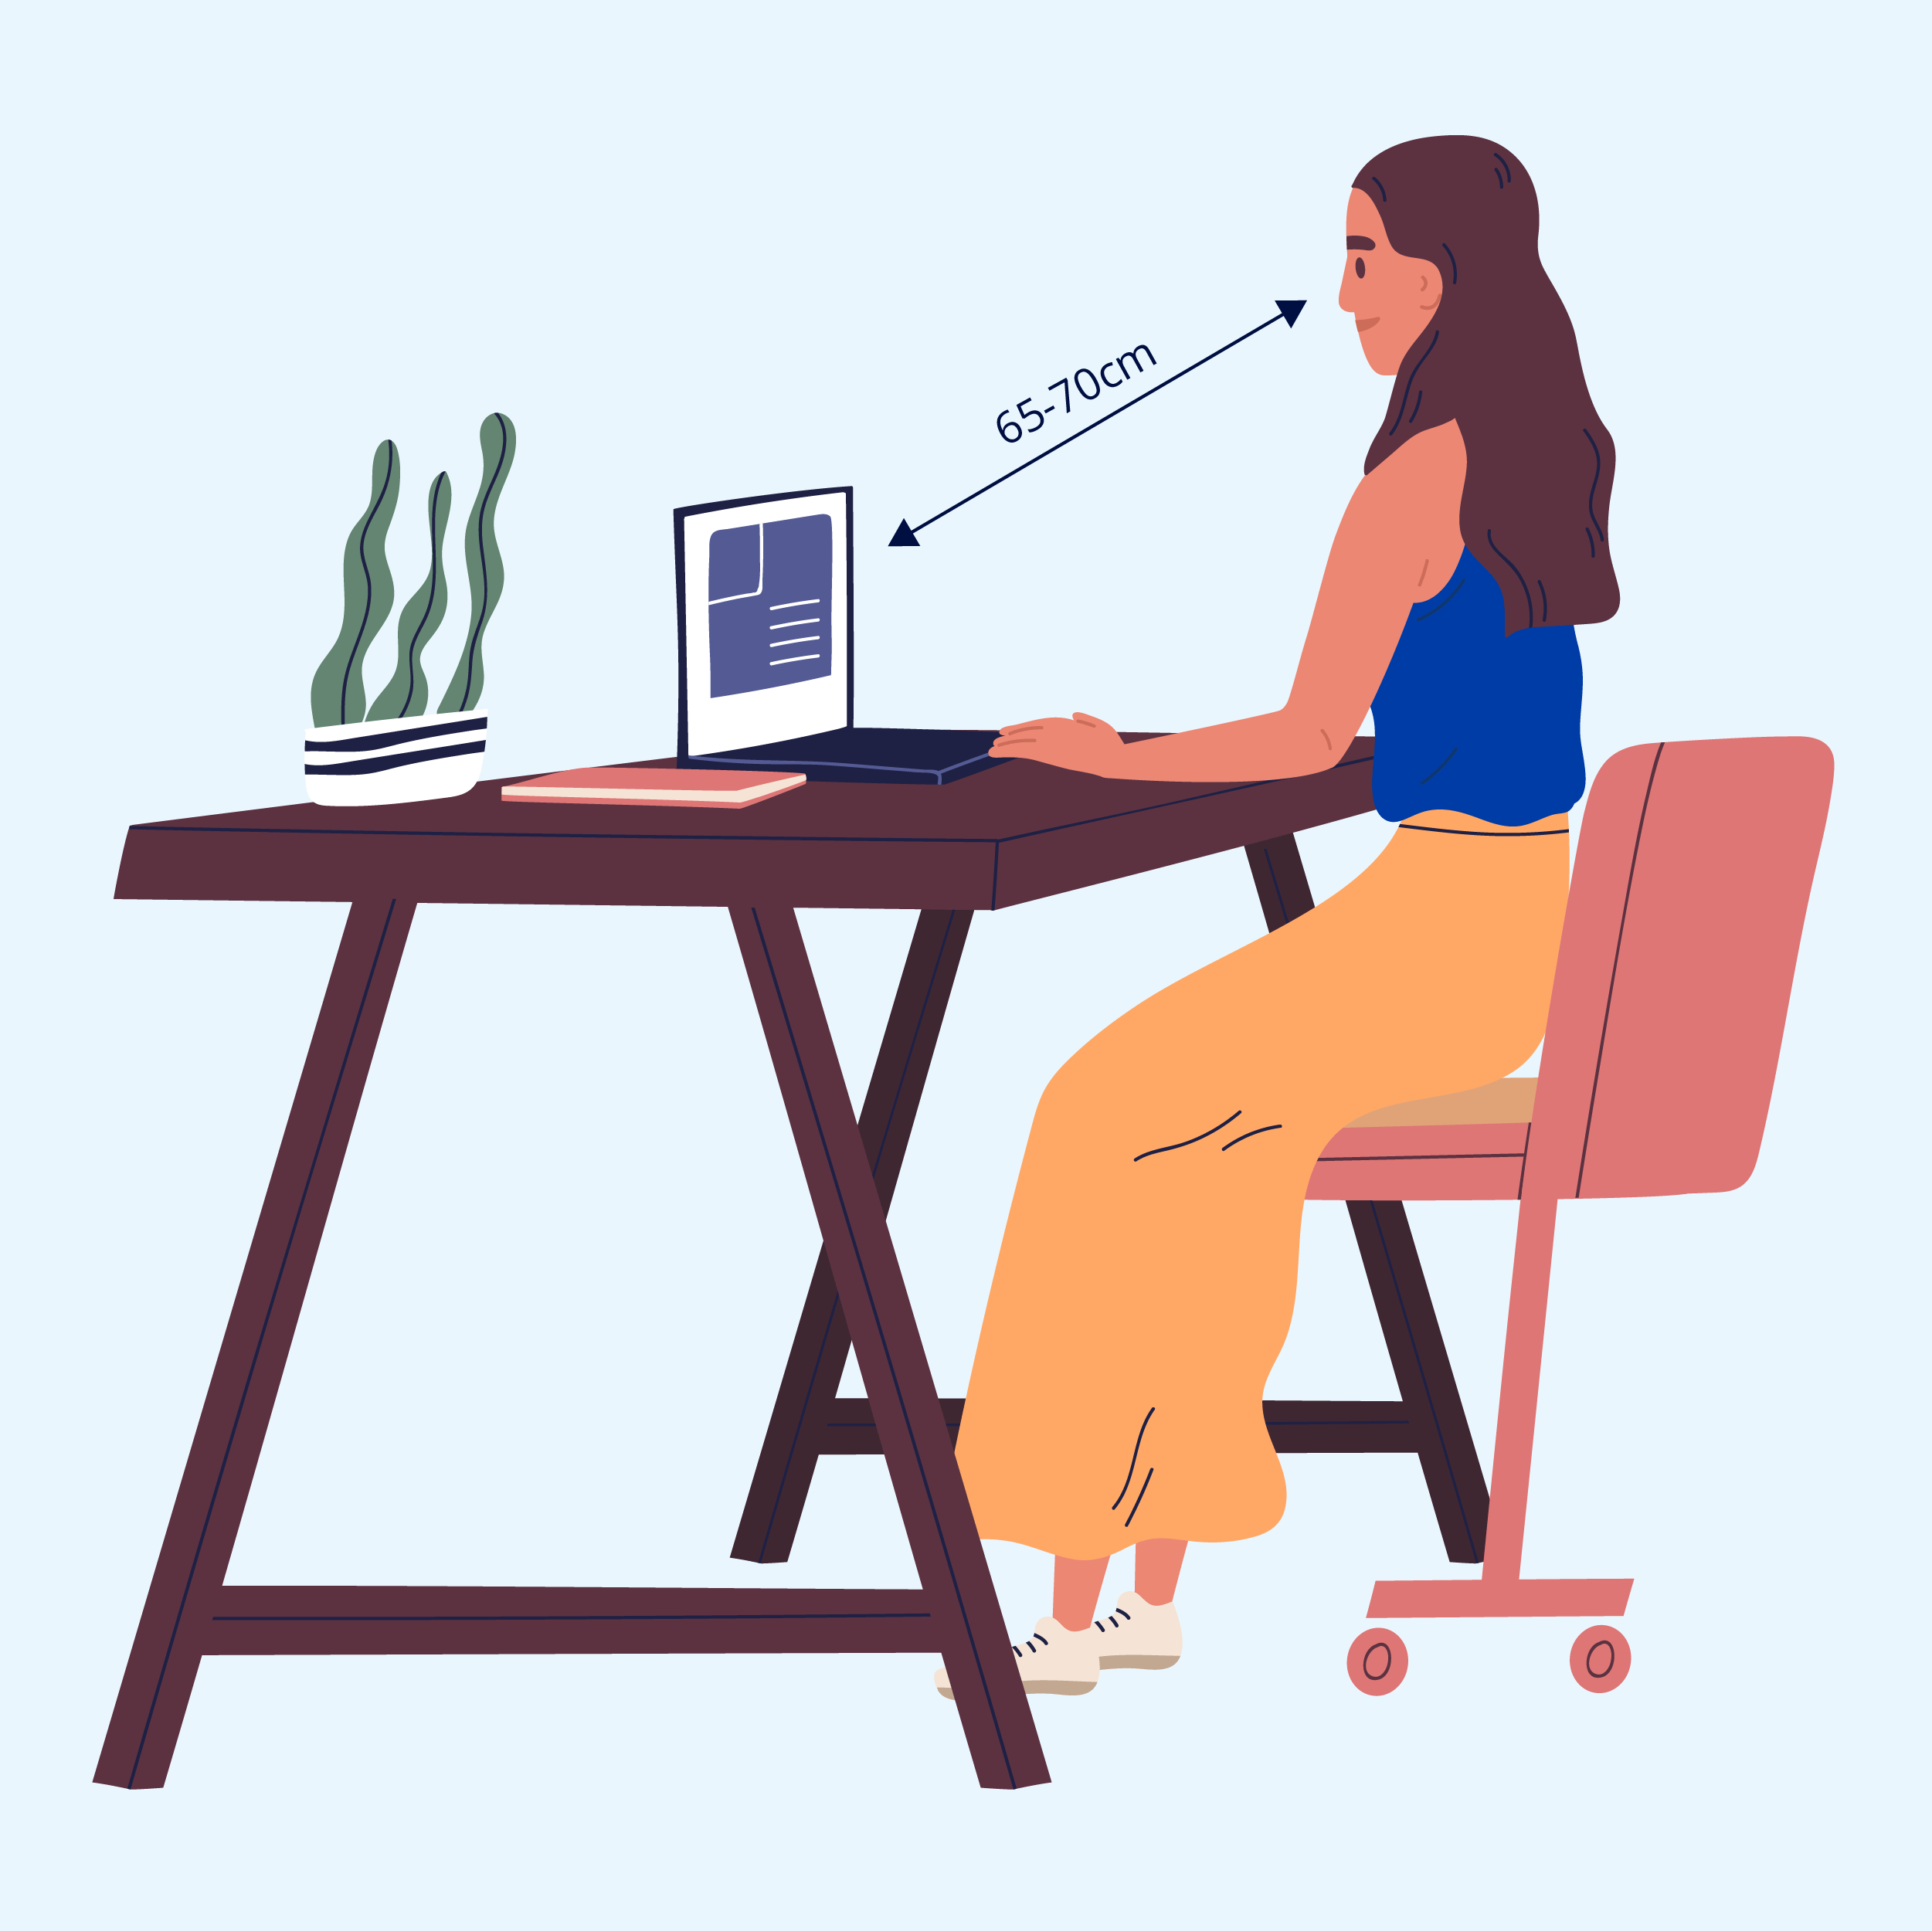 Illustration showing suitable distance from computer screen on desk